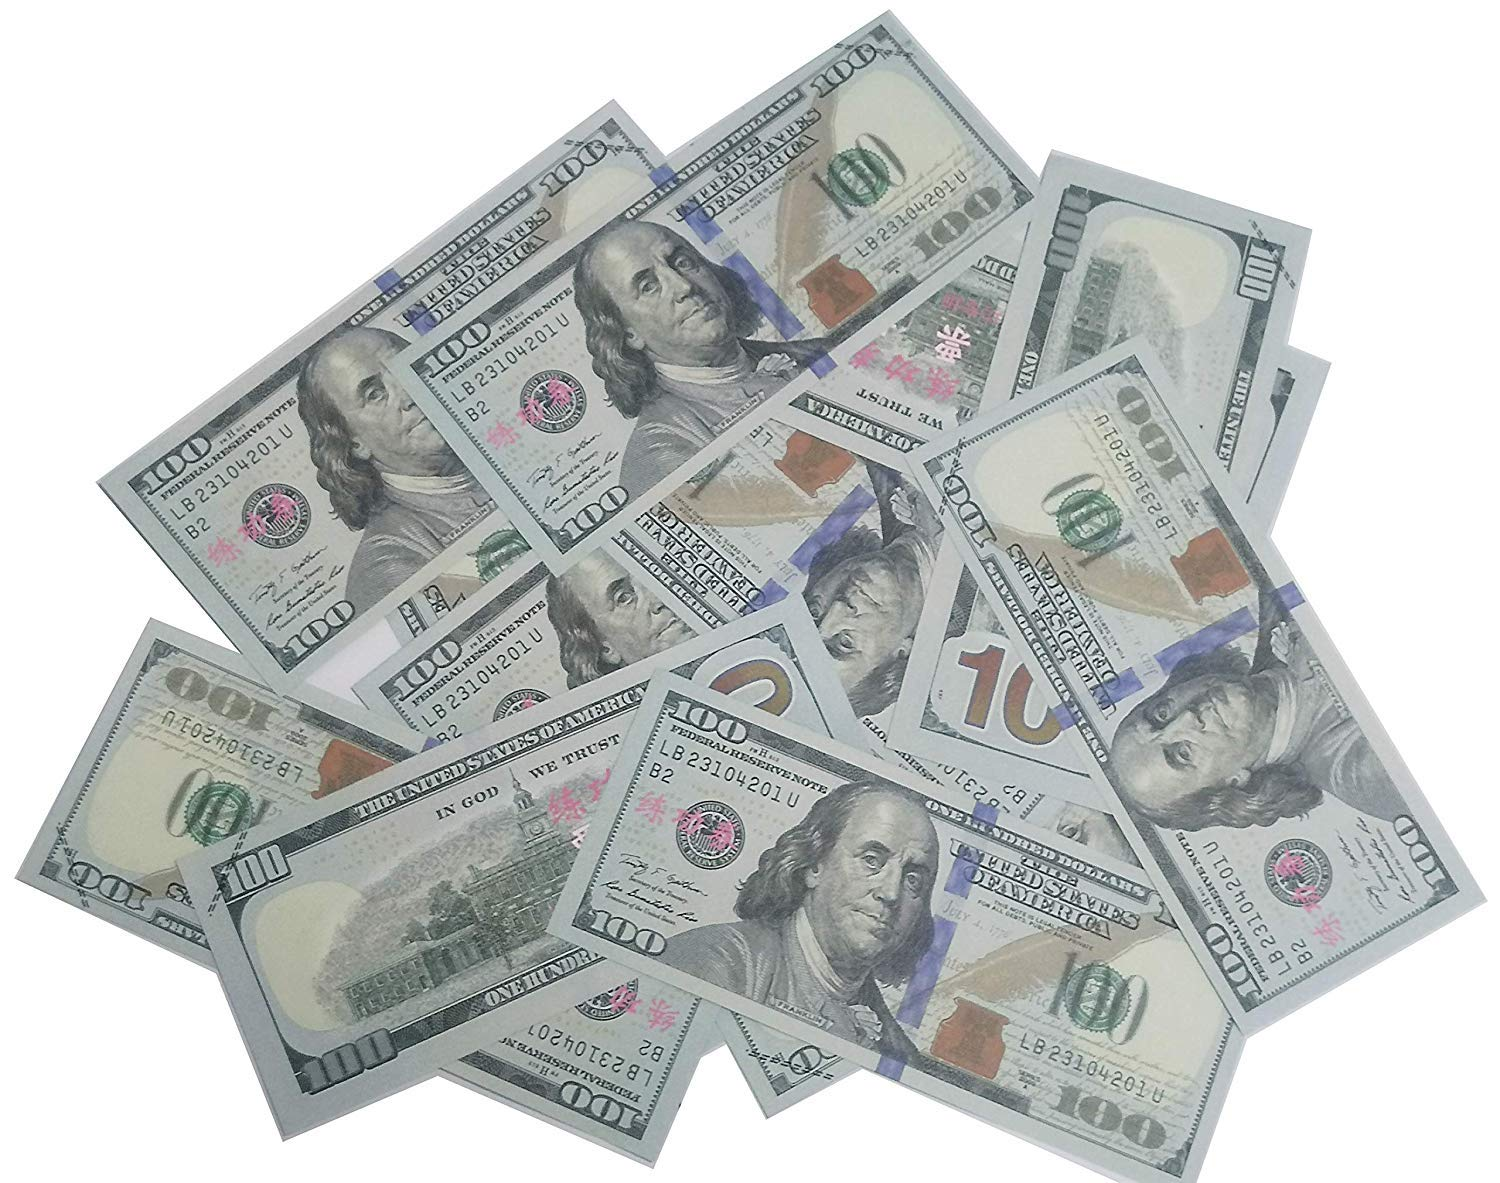 Video Party with Realistic Copy Money Stacks PROPIN Prop Money Motion Picture Money 100pcs $100 Bills 2-Side Printed Play Money Great for Movie TV